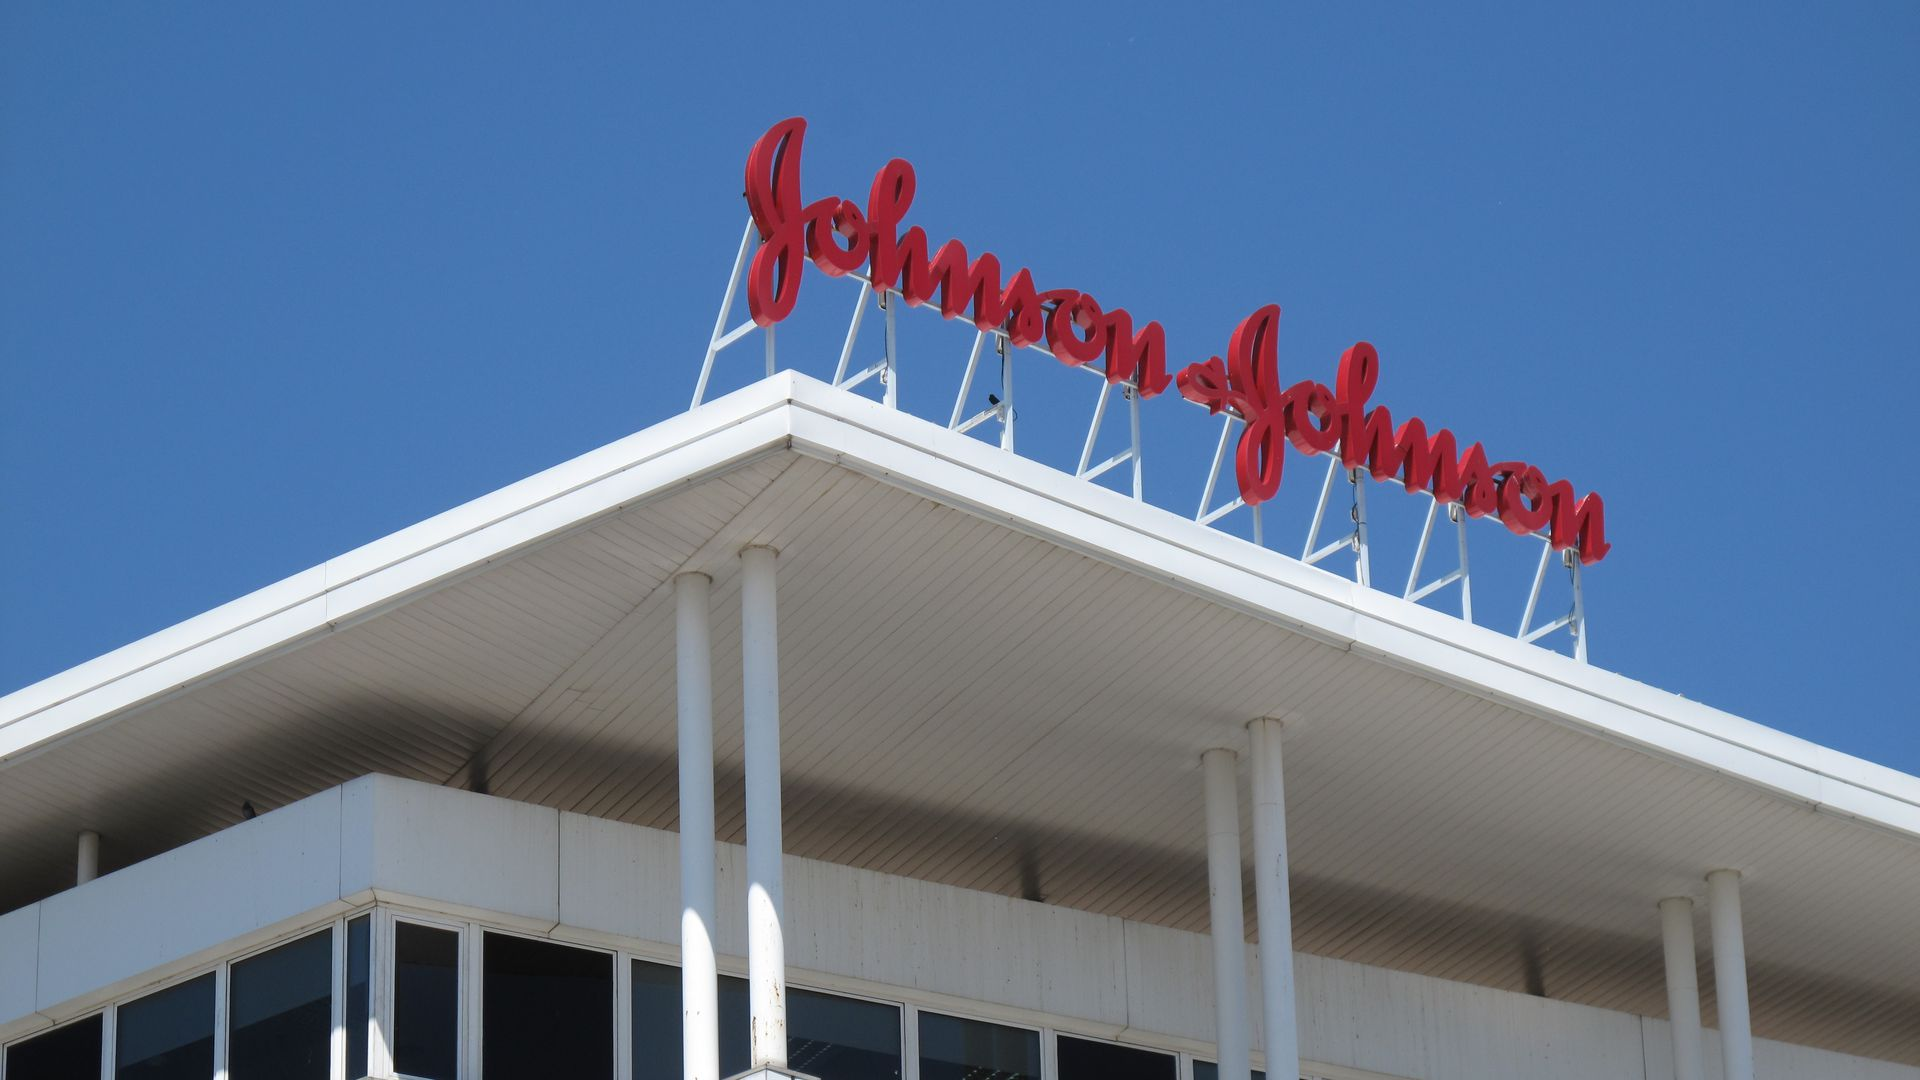 Johnson & Johnson logo on top of a building.